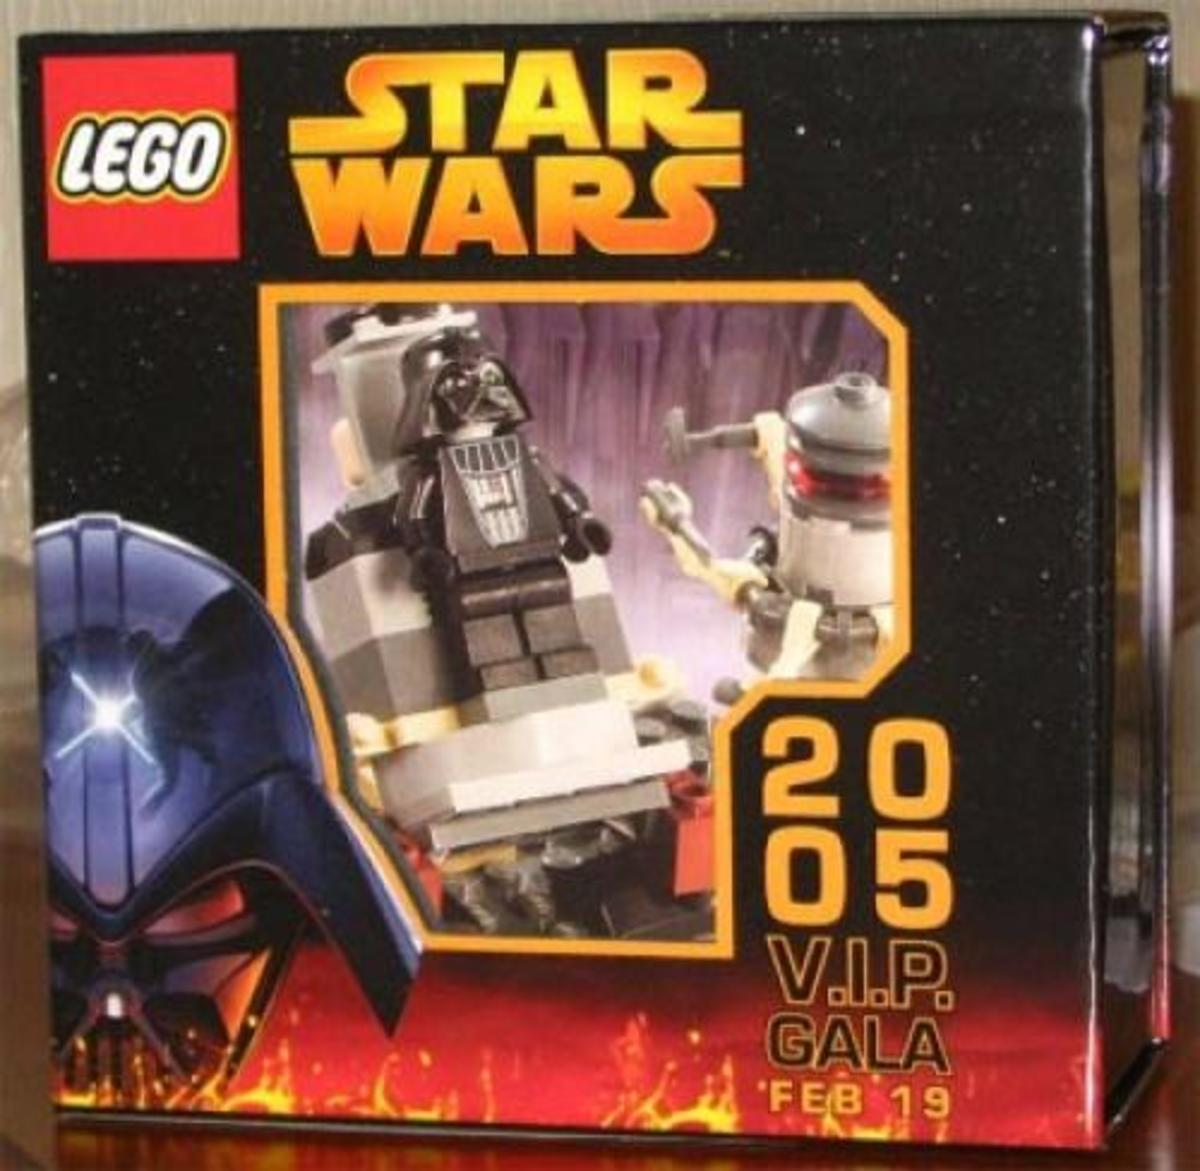 LEGO Star Wars V.I.P. Gala Set tf05 Box